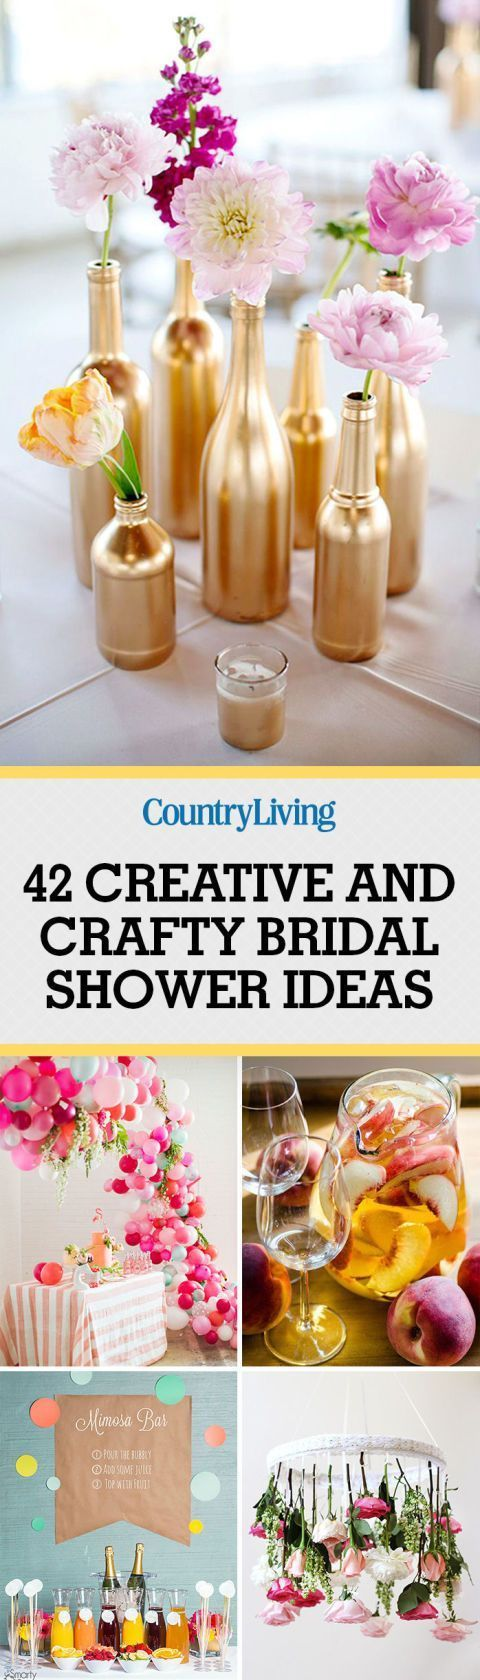 Don't forget to pin these crafty bridal shower ideas! Follow us on Pinterest for more great craft ideas.